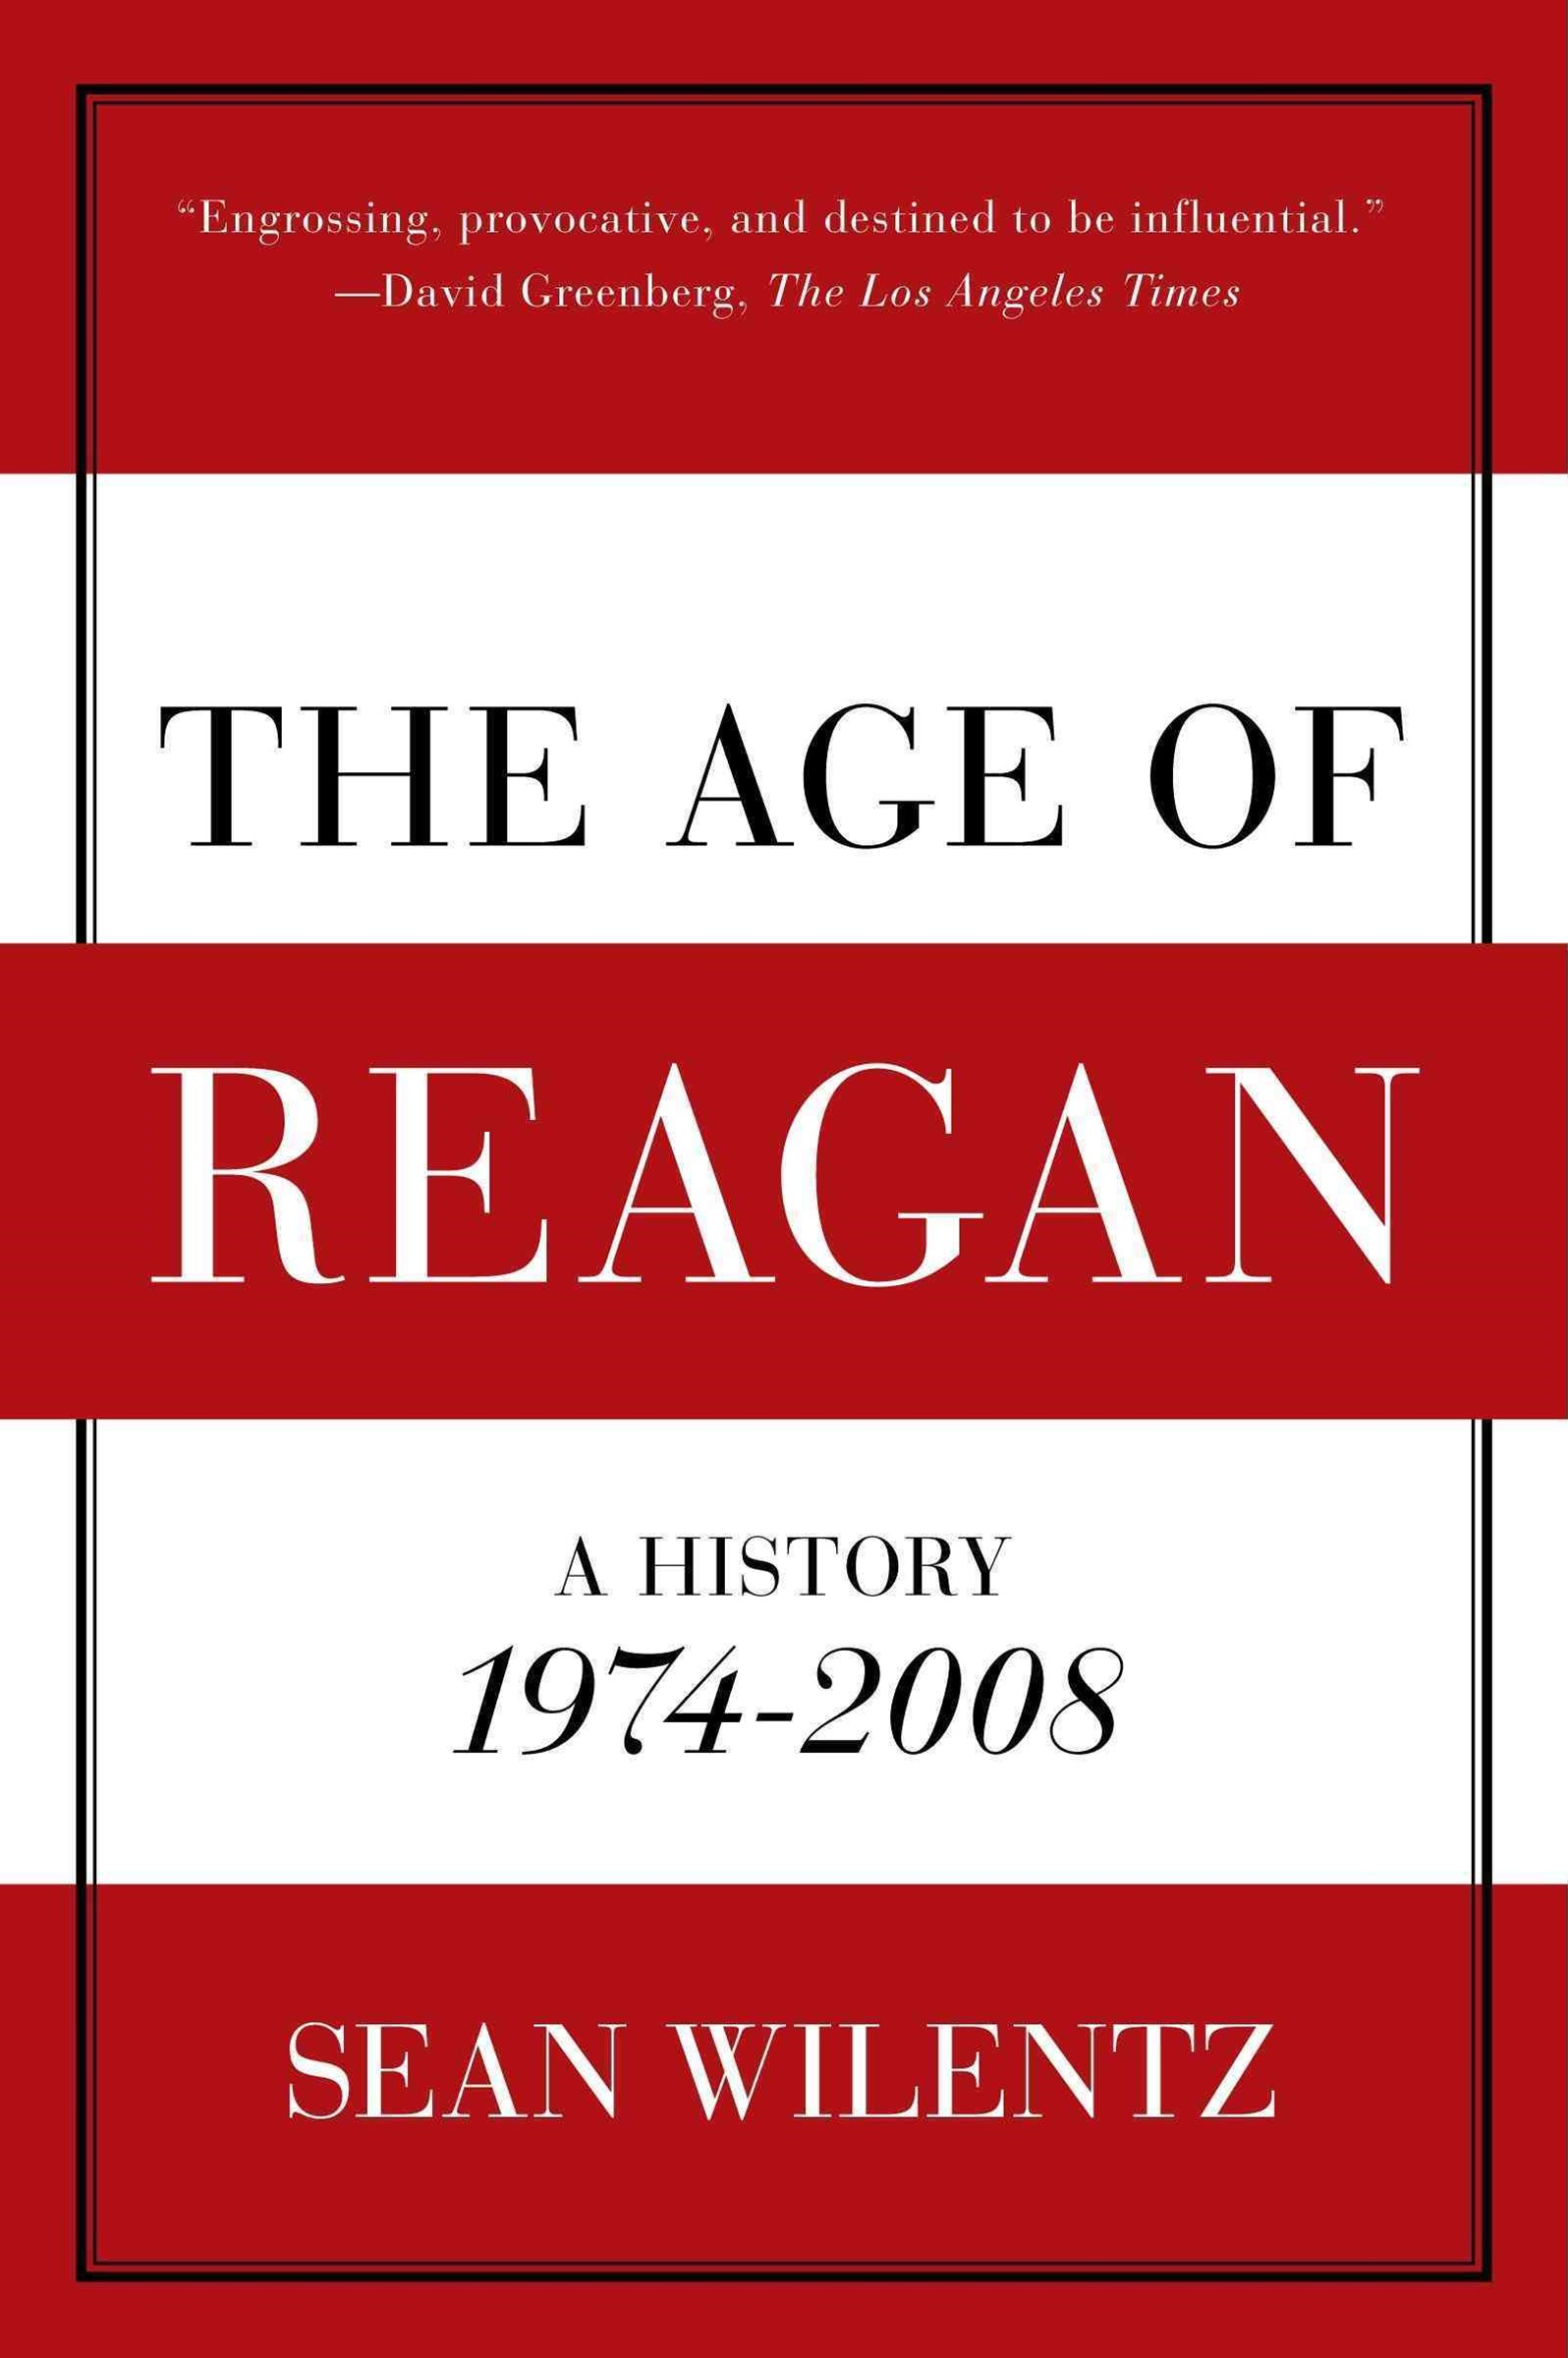 The Age of Reagan: A History, 1974 - 2008